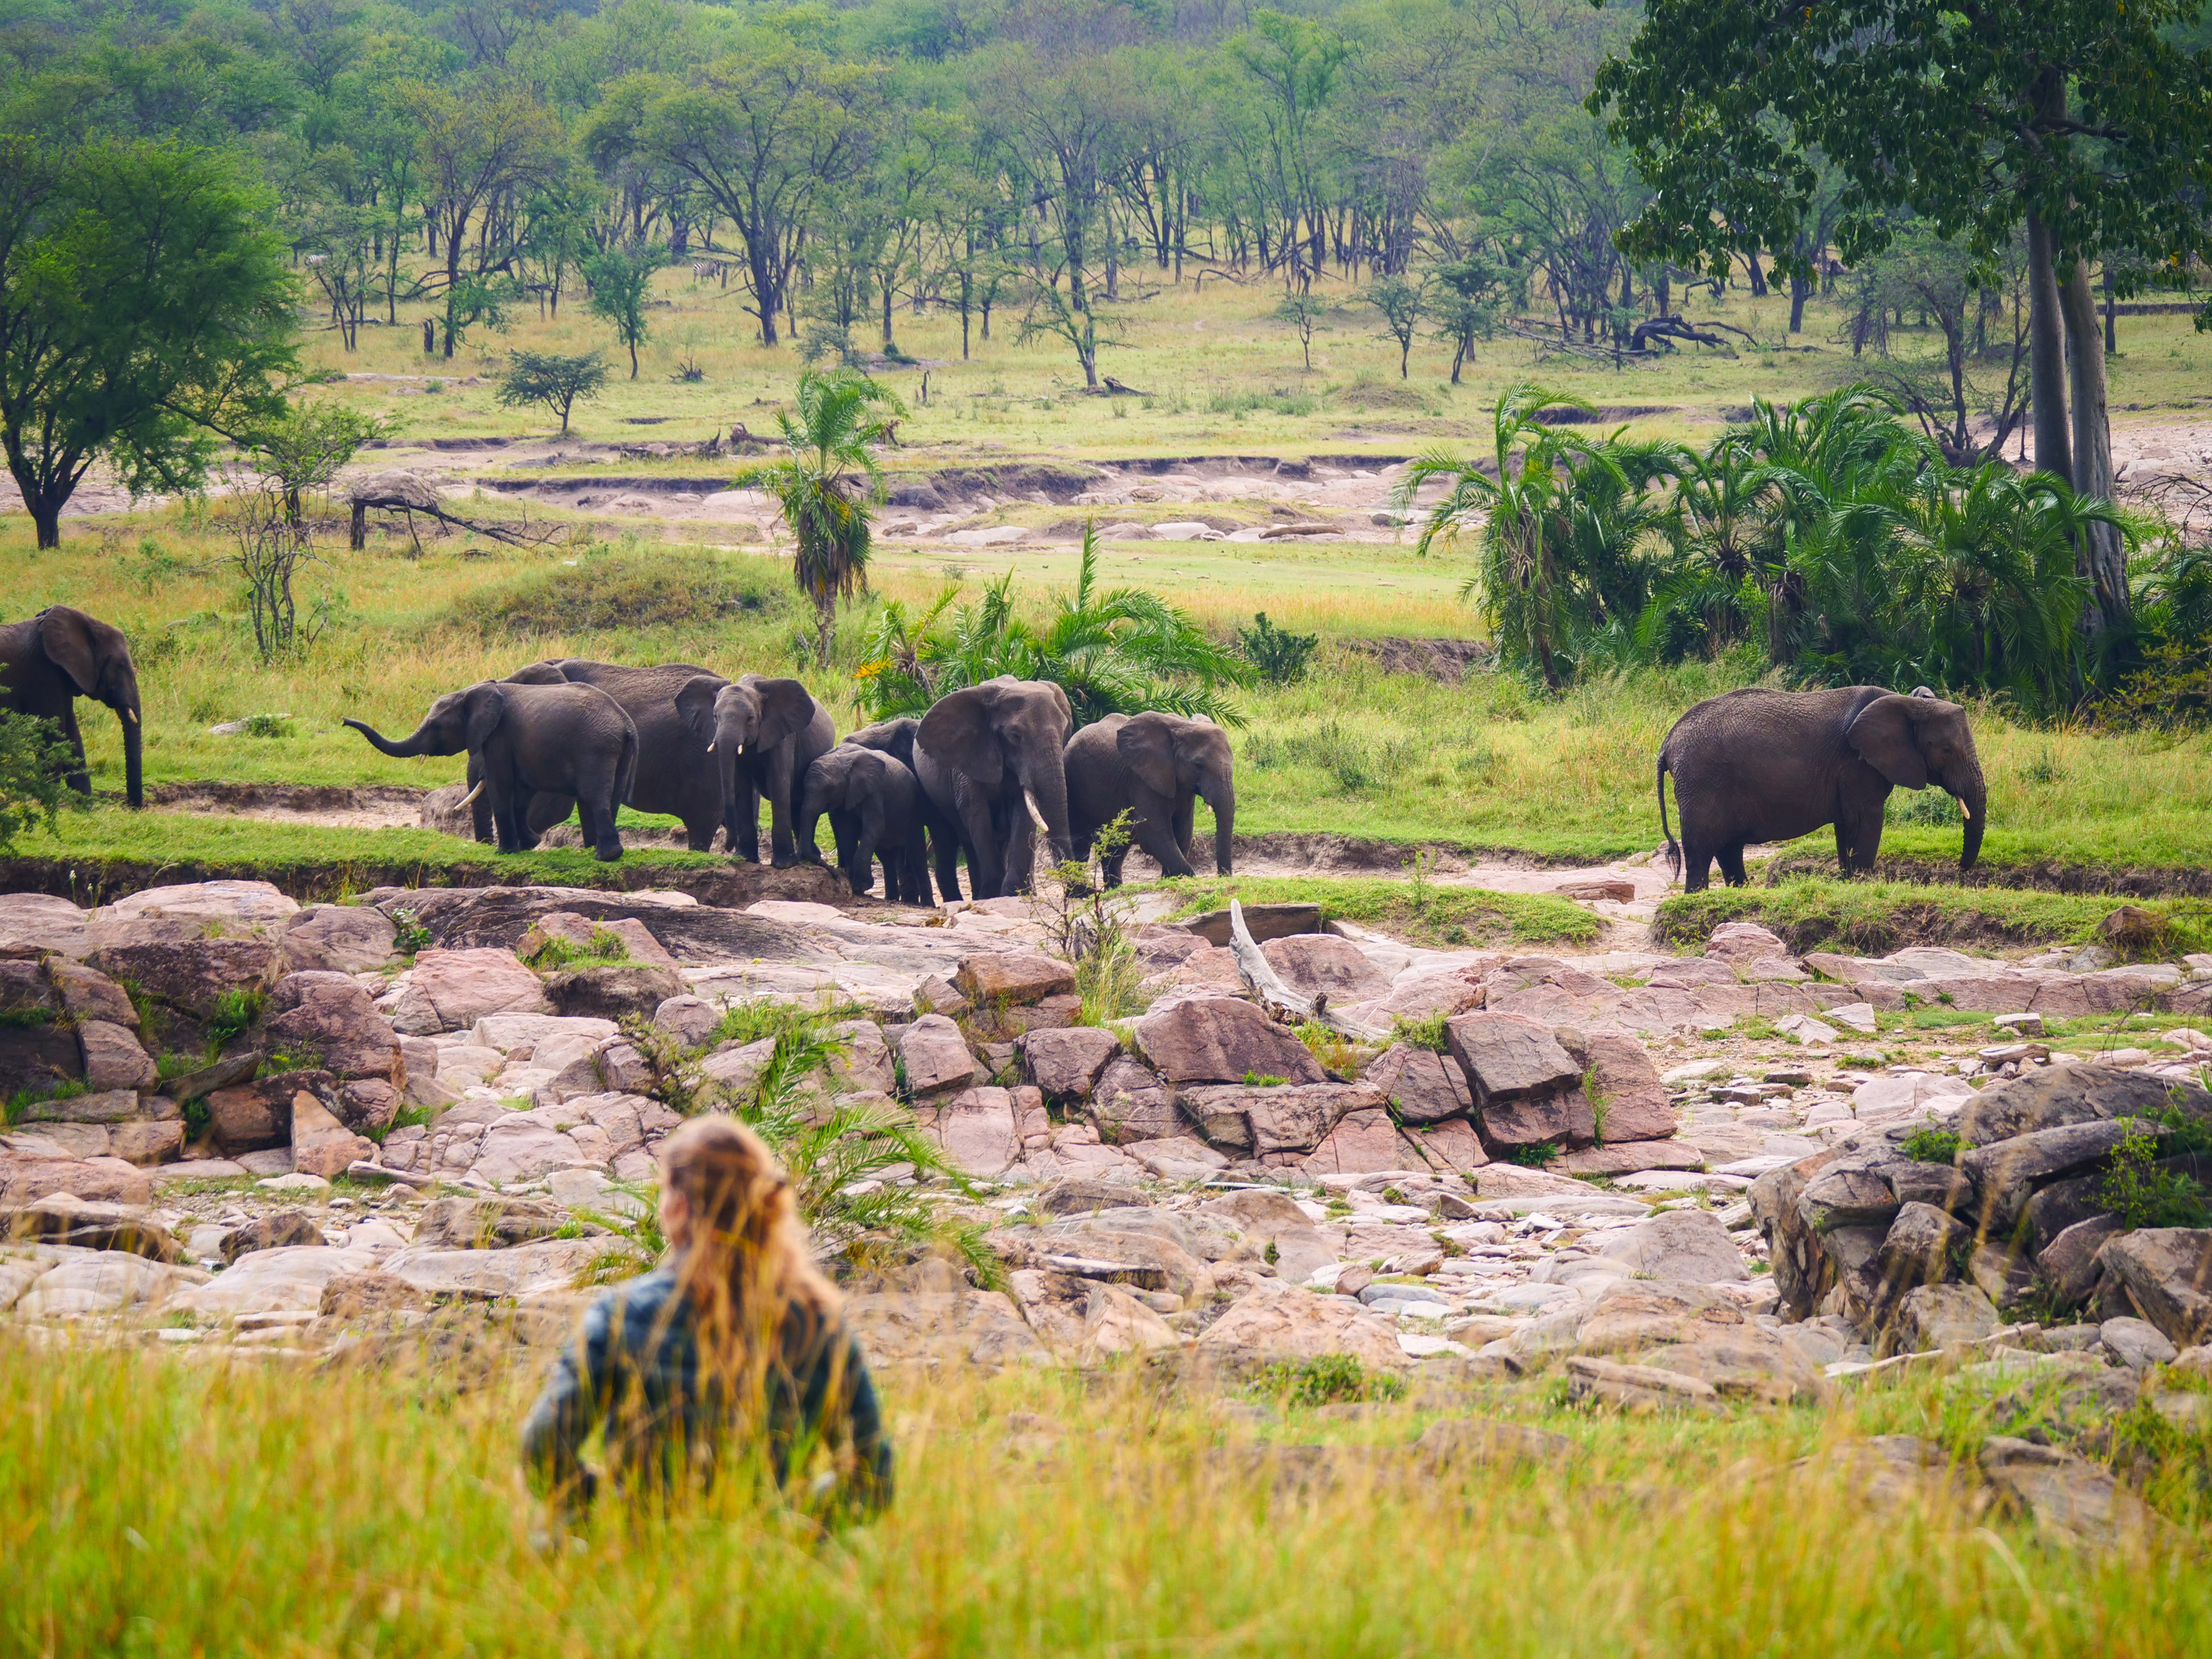 Elephant-encounters-from-Kogatende-Green-Camp.jpg#asset:116558